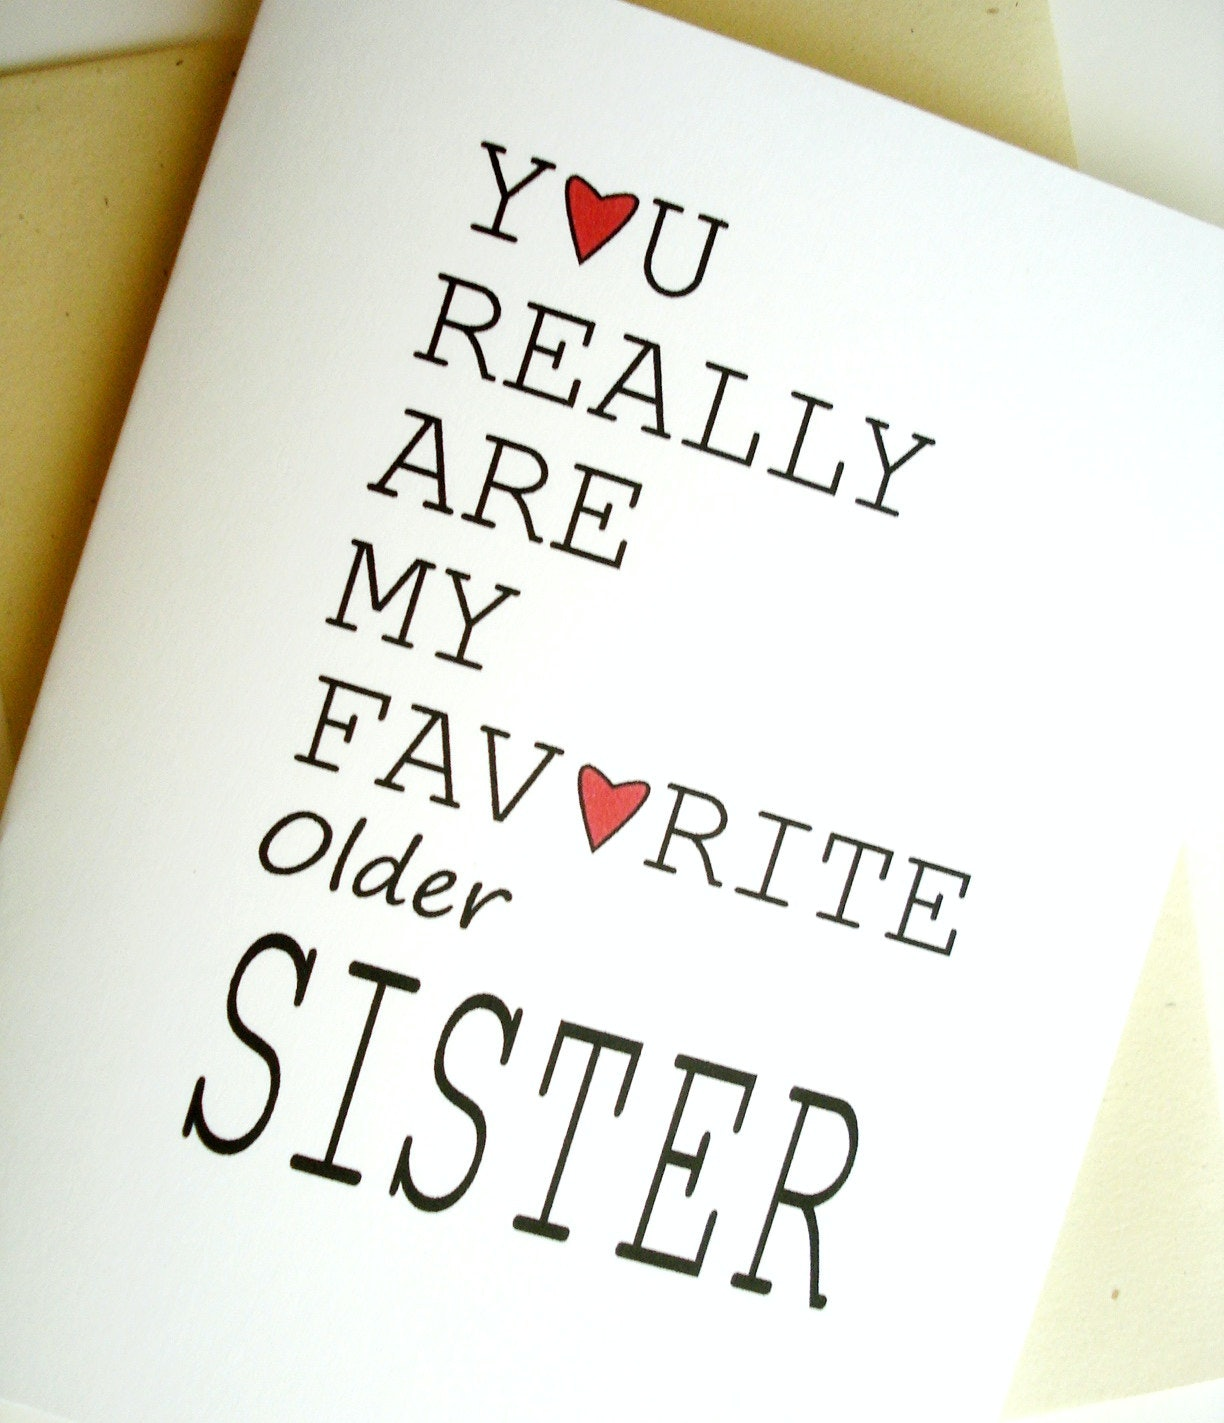 13 National Sibling Day Cards To Give Your Brothers And Sisters